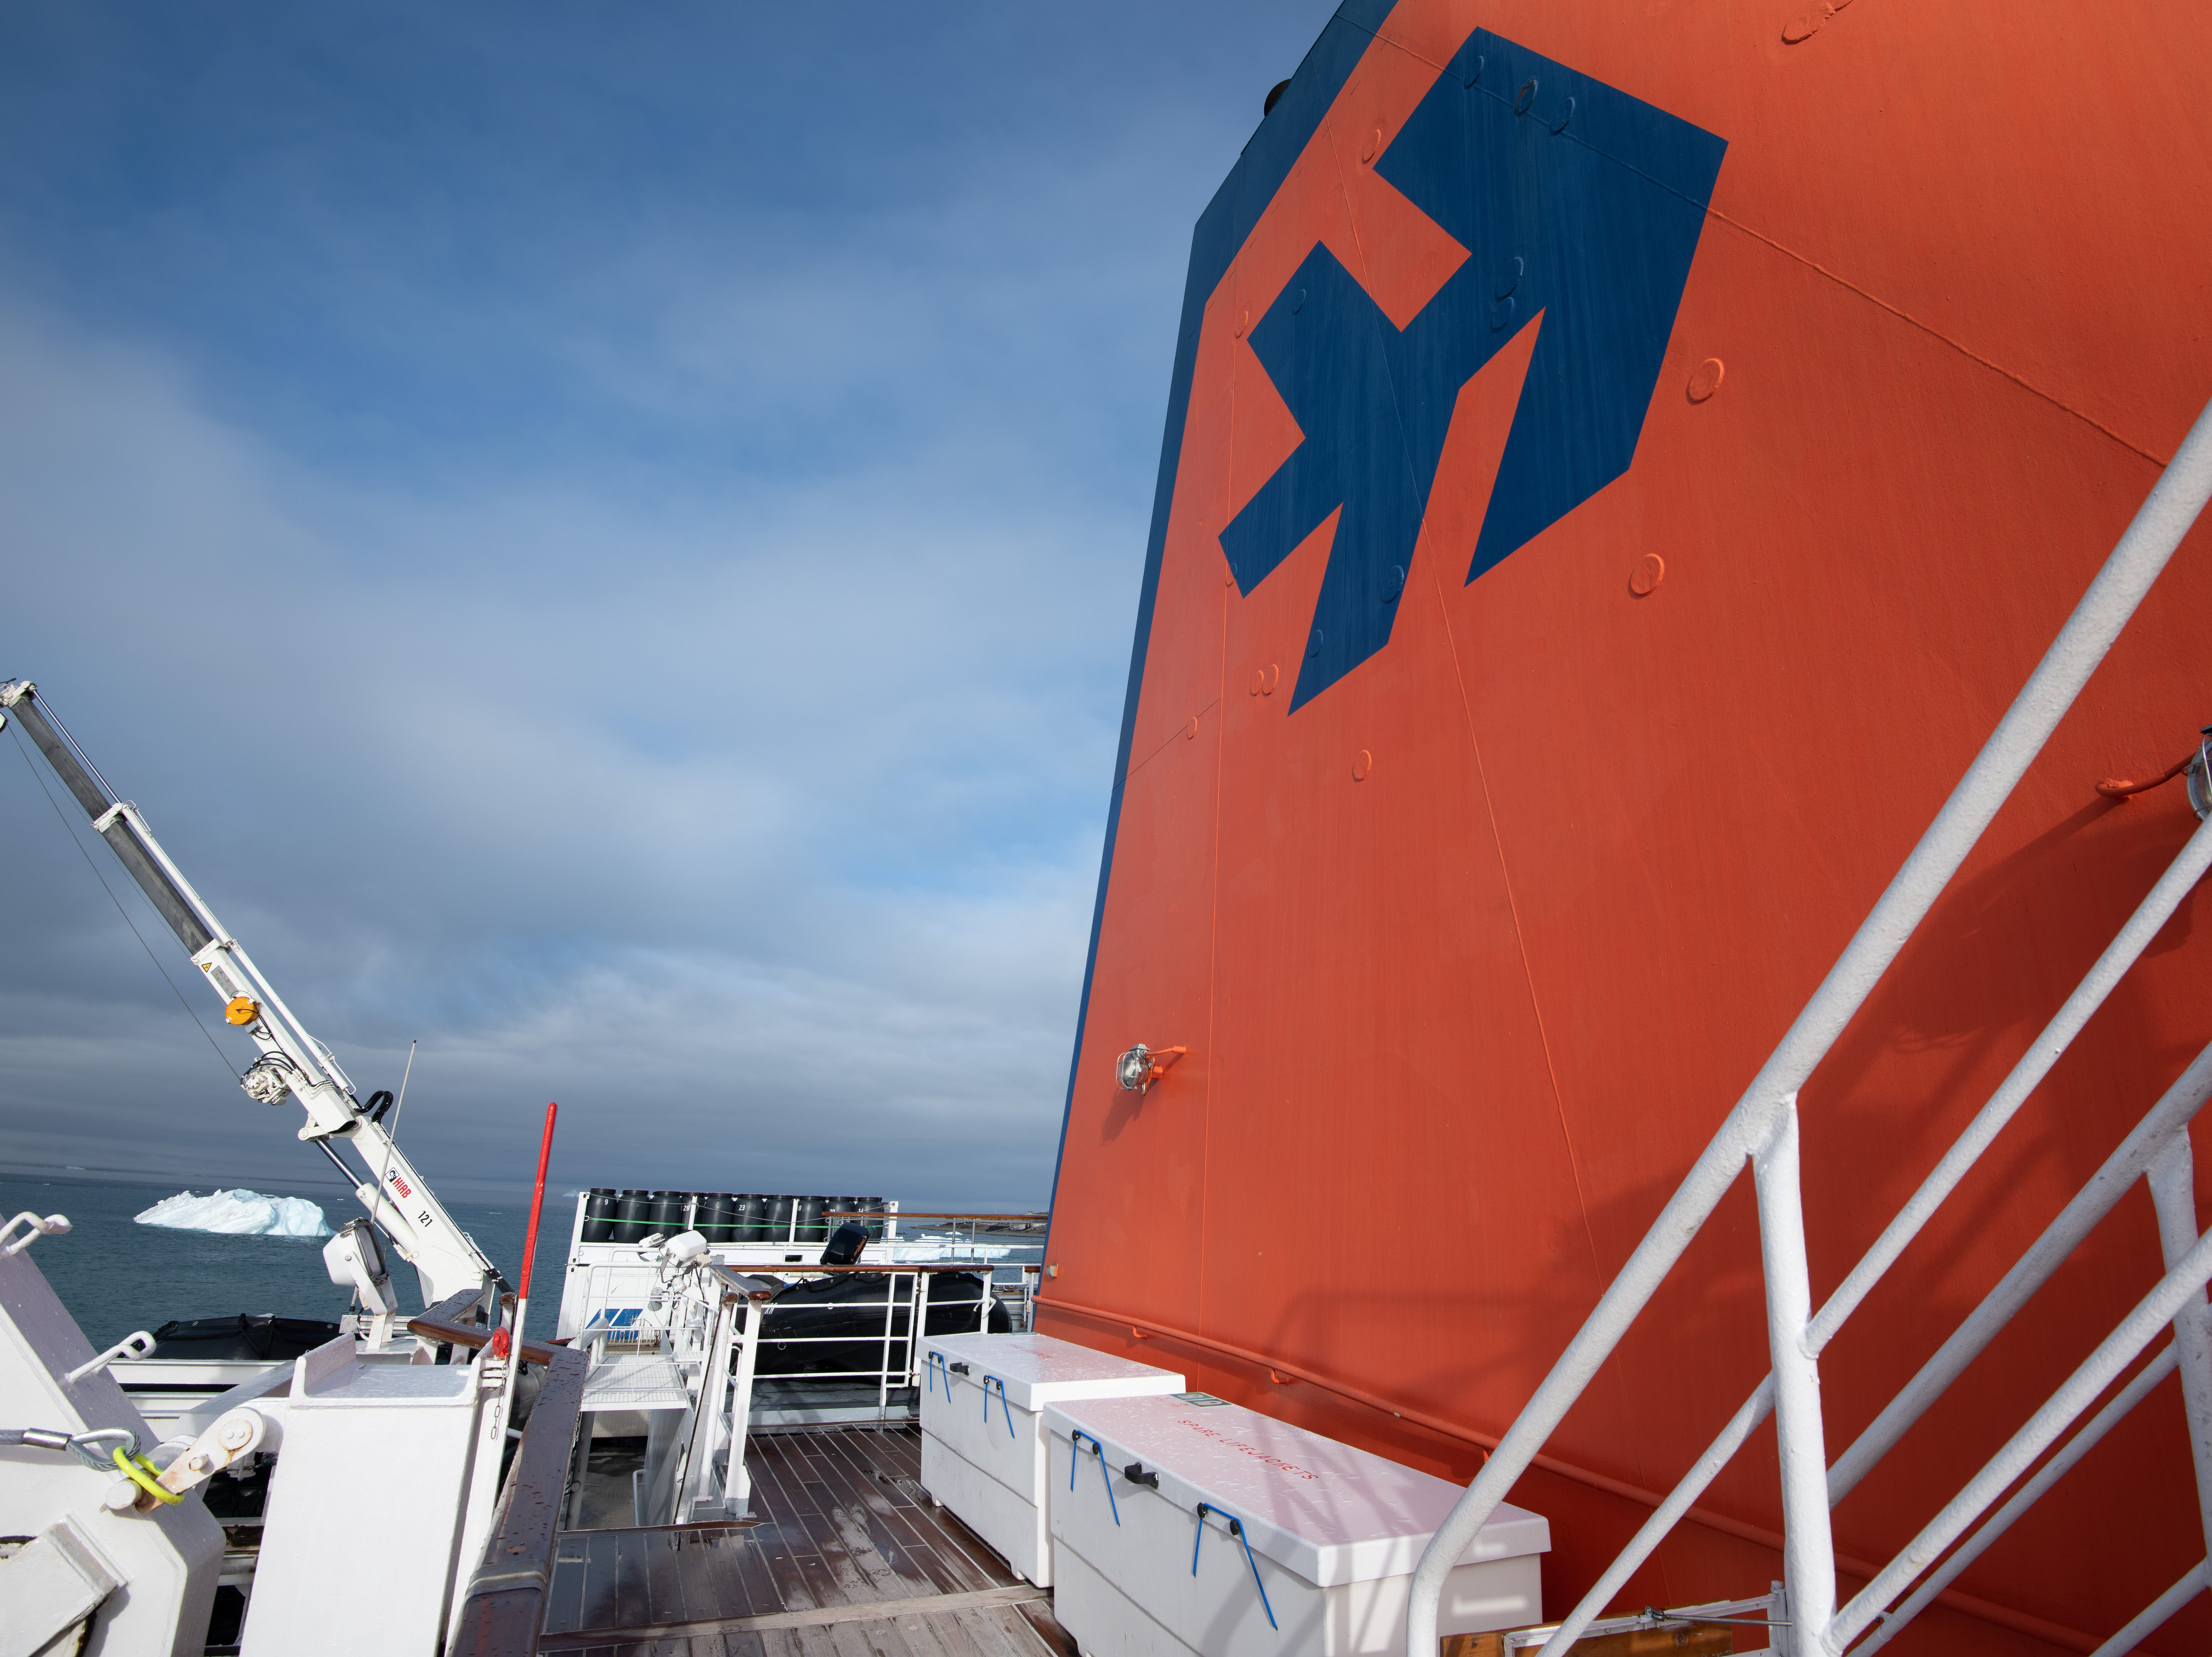 A walkway on Deck 6 bends around Bremen's large orange funnel, offering a view of the crane used to lower Zodiac boats for landings.